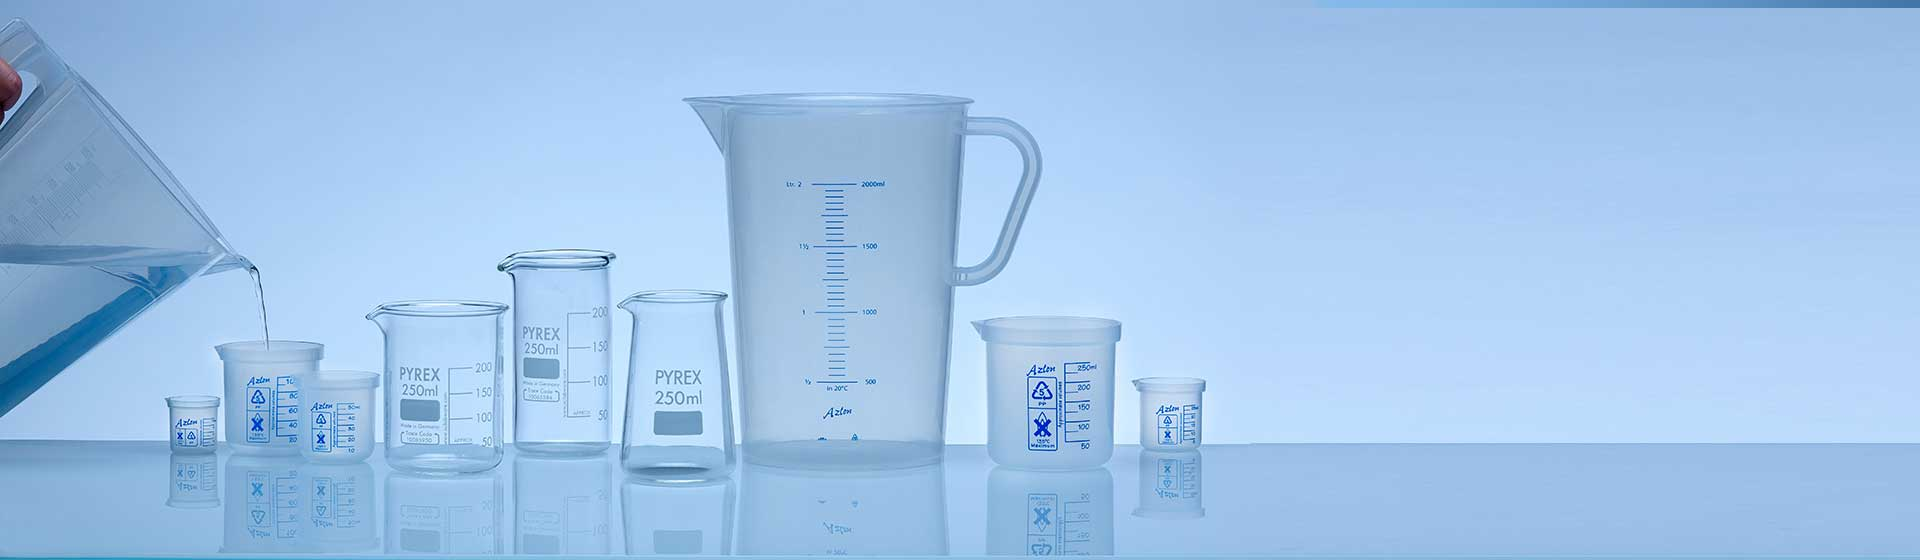 Stackable beakers